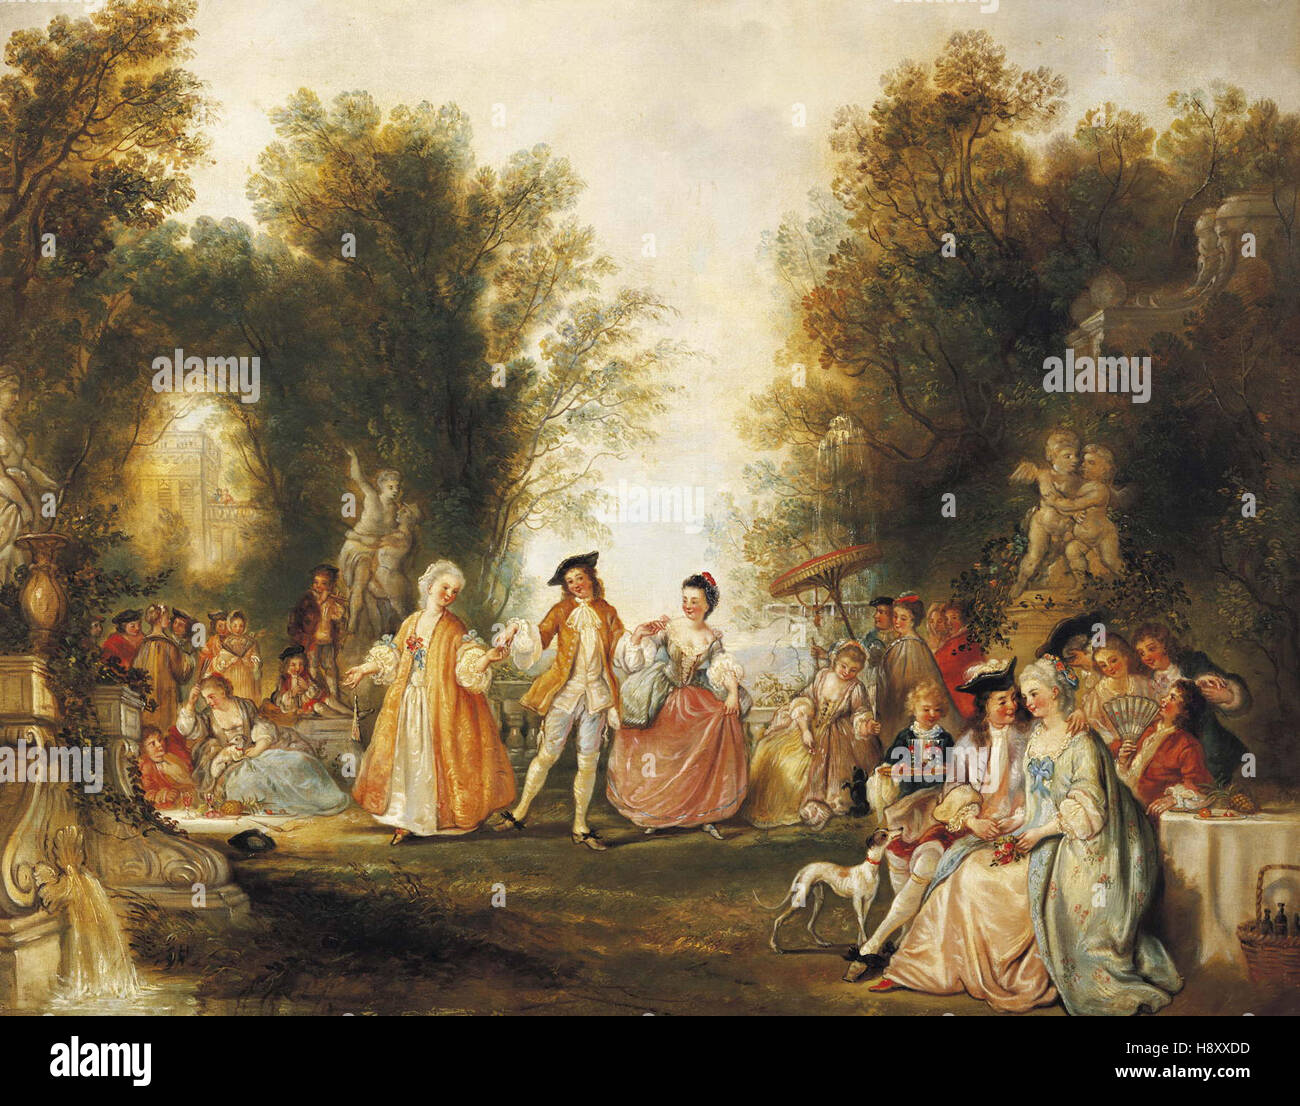 Henry Andrews   Countryside Festivities - Stock Image